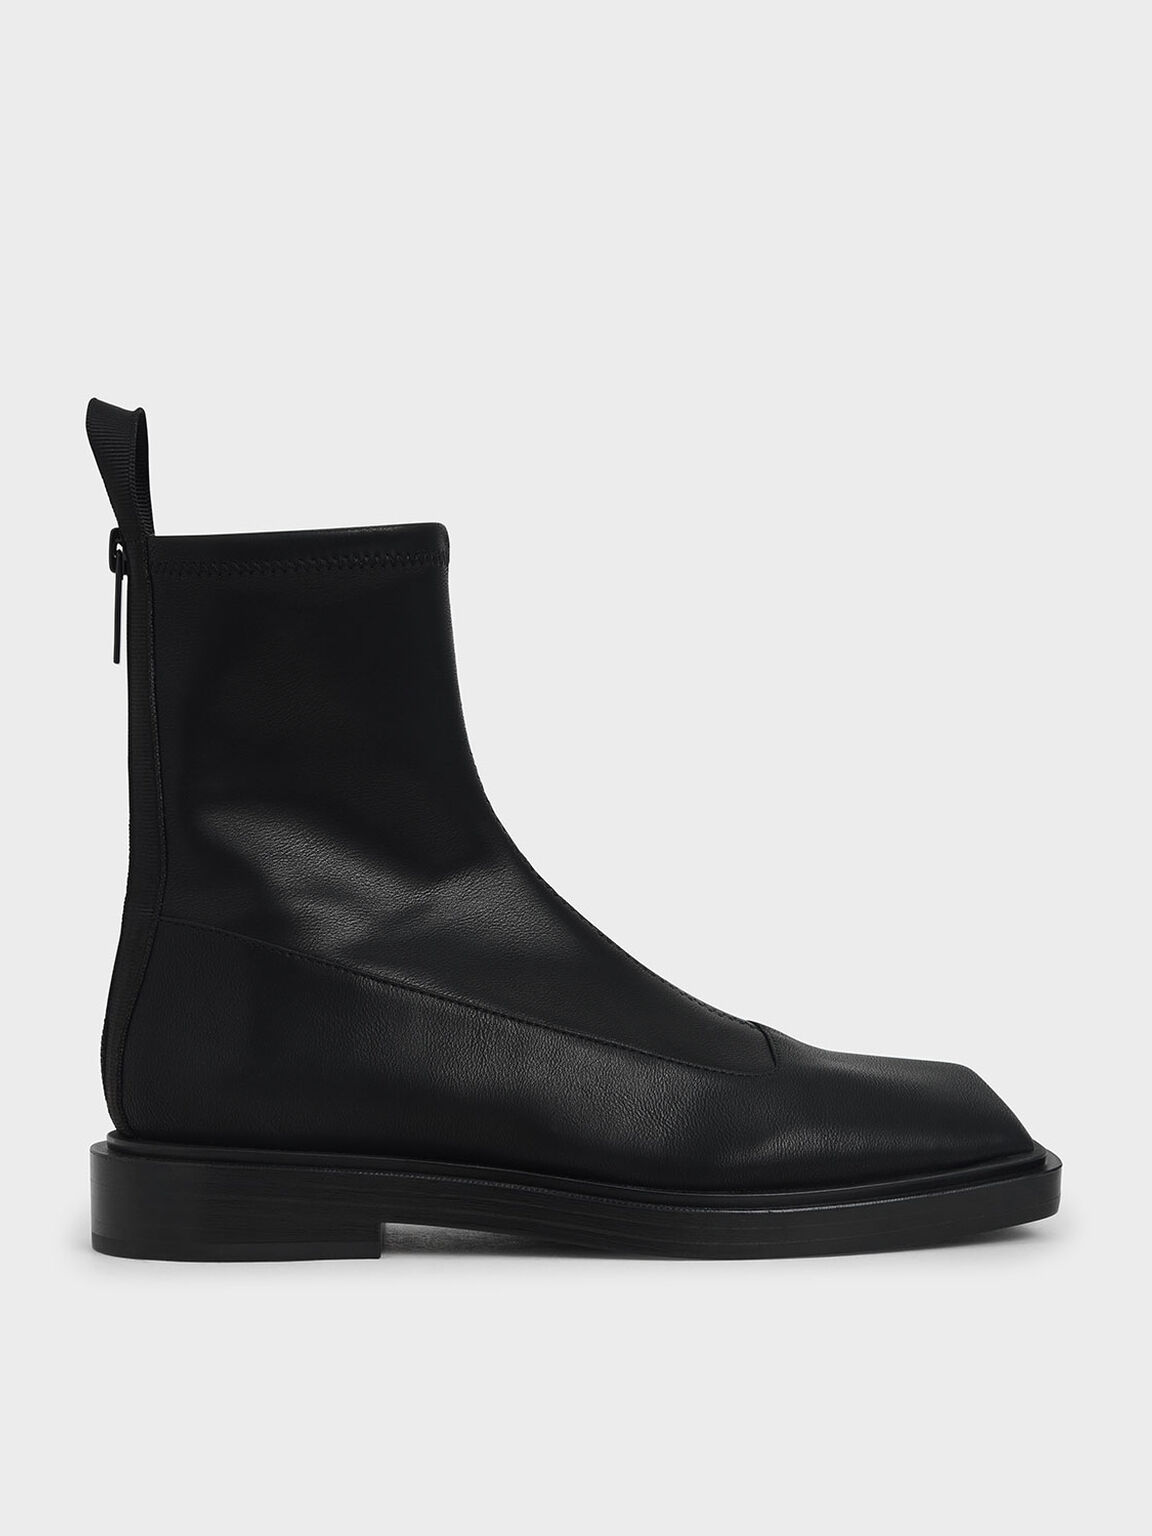 Sculptural Ankle Boots, Black, hi-res